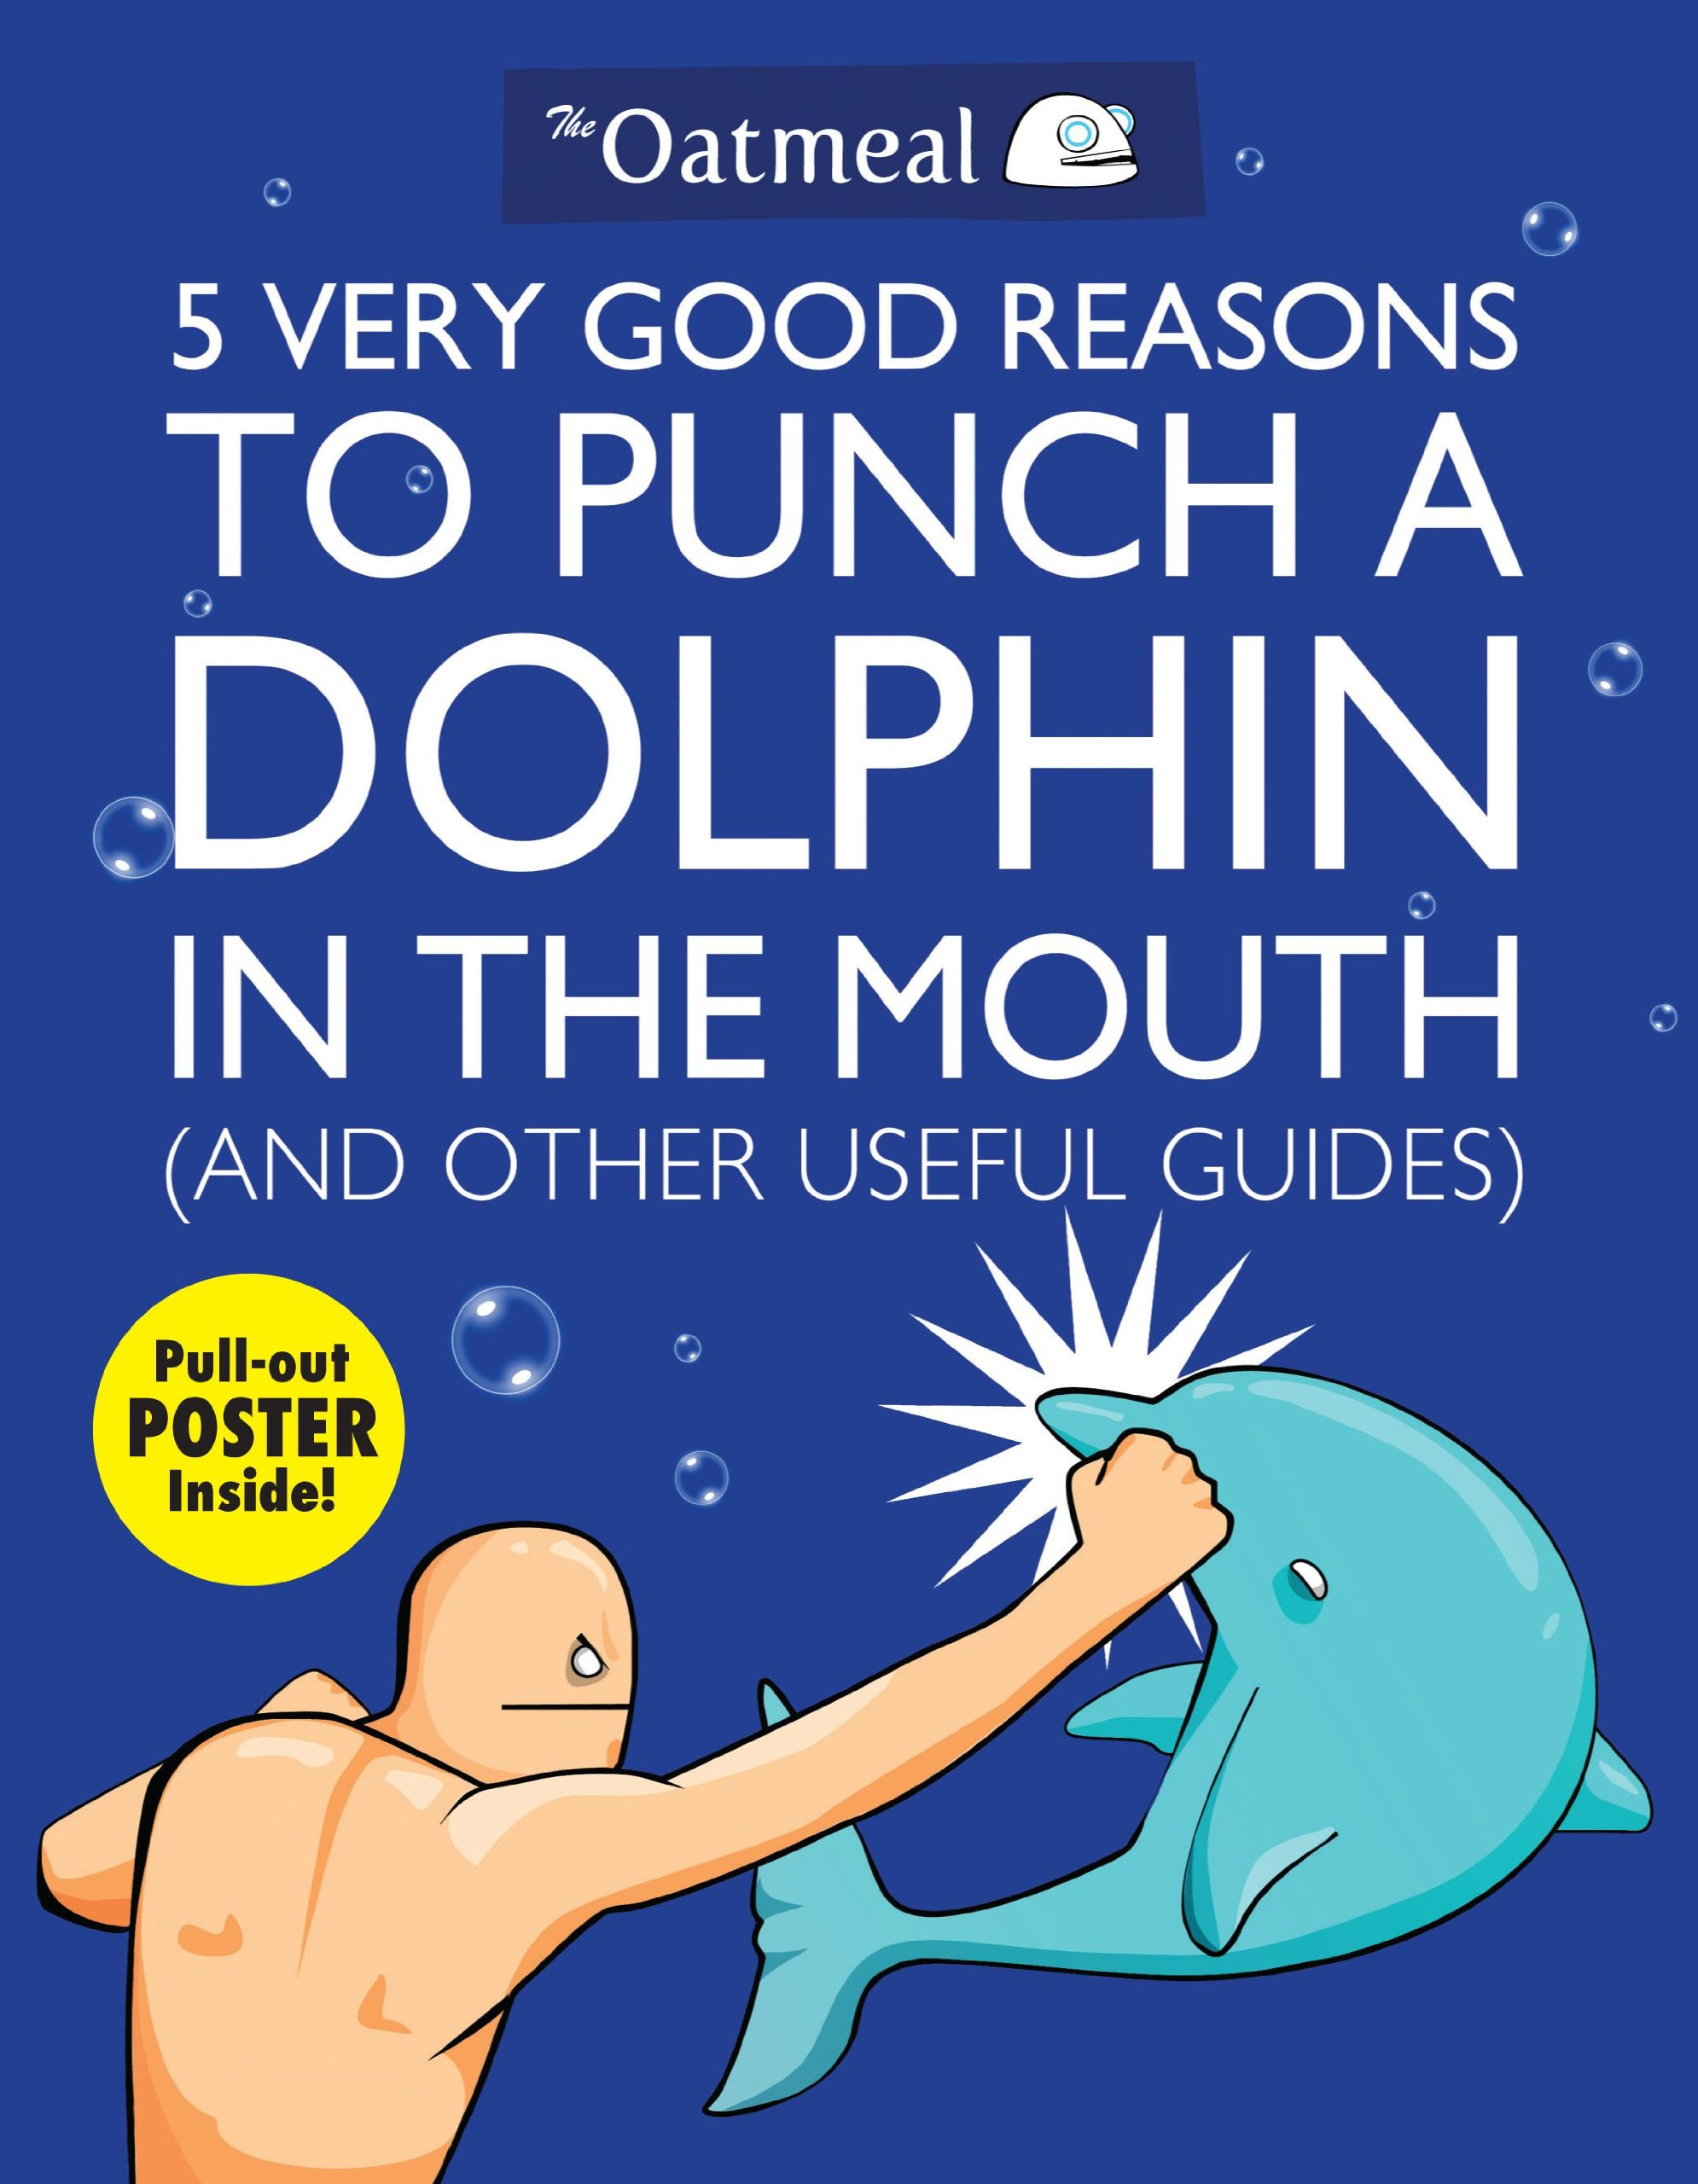 5 Very Good Reasons to Punch a Dolphin in the Mouth (And Other Useful Guides) (Oatmeal, Band 1)